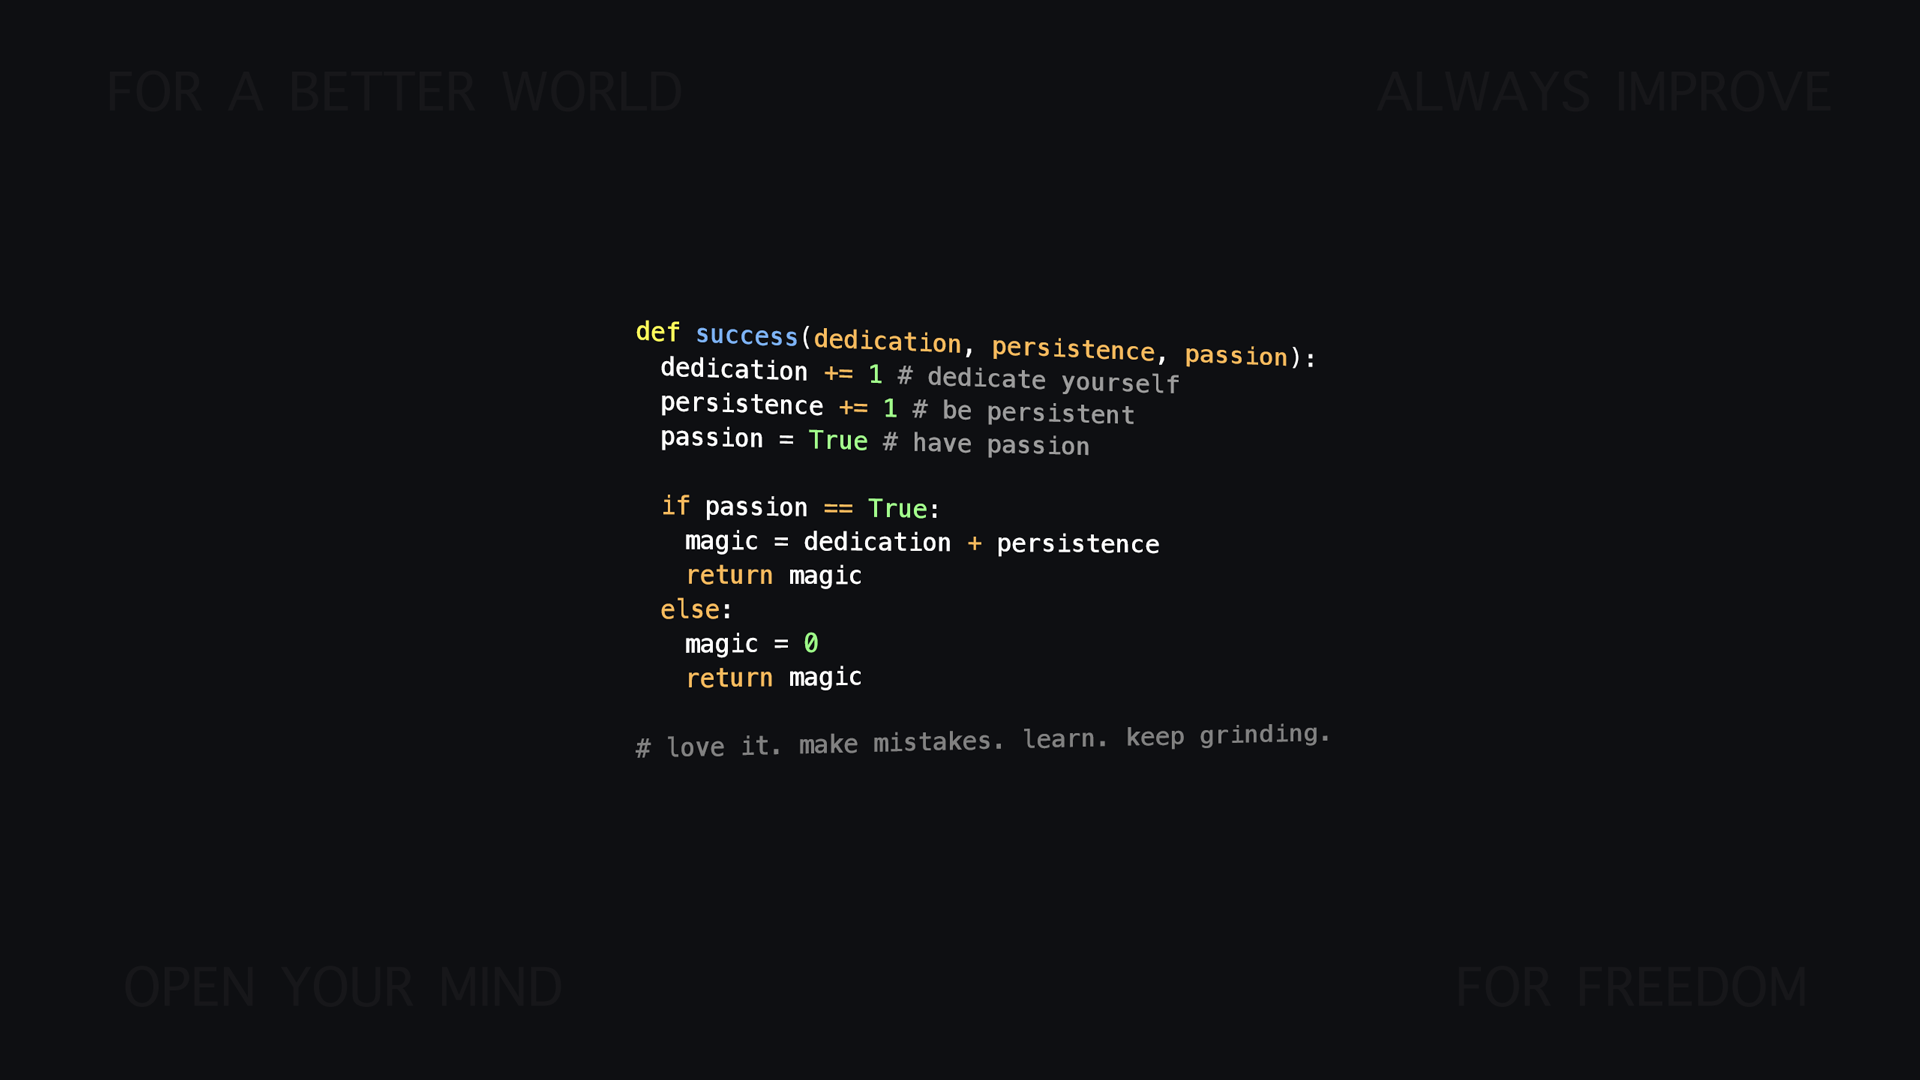 Programming Hd Wallpapers For Desktop In 2019 Web